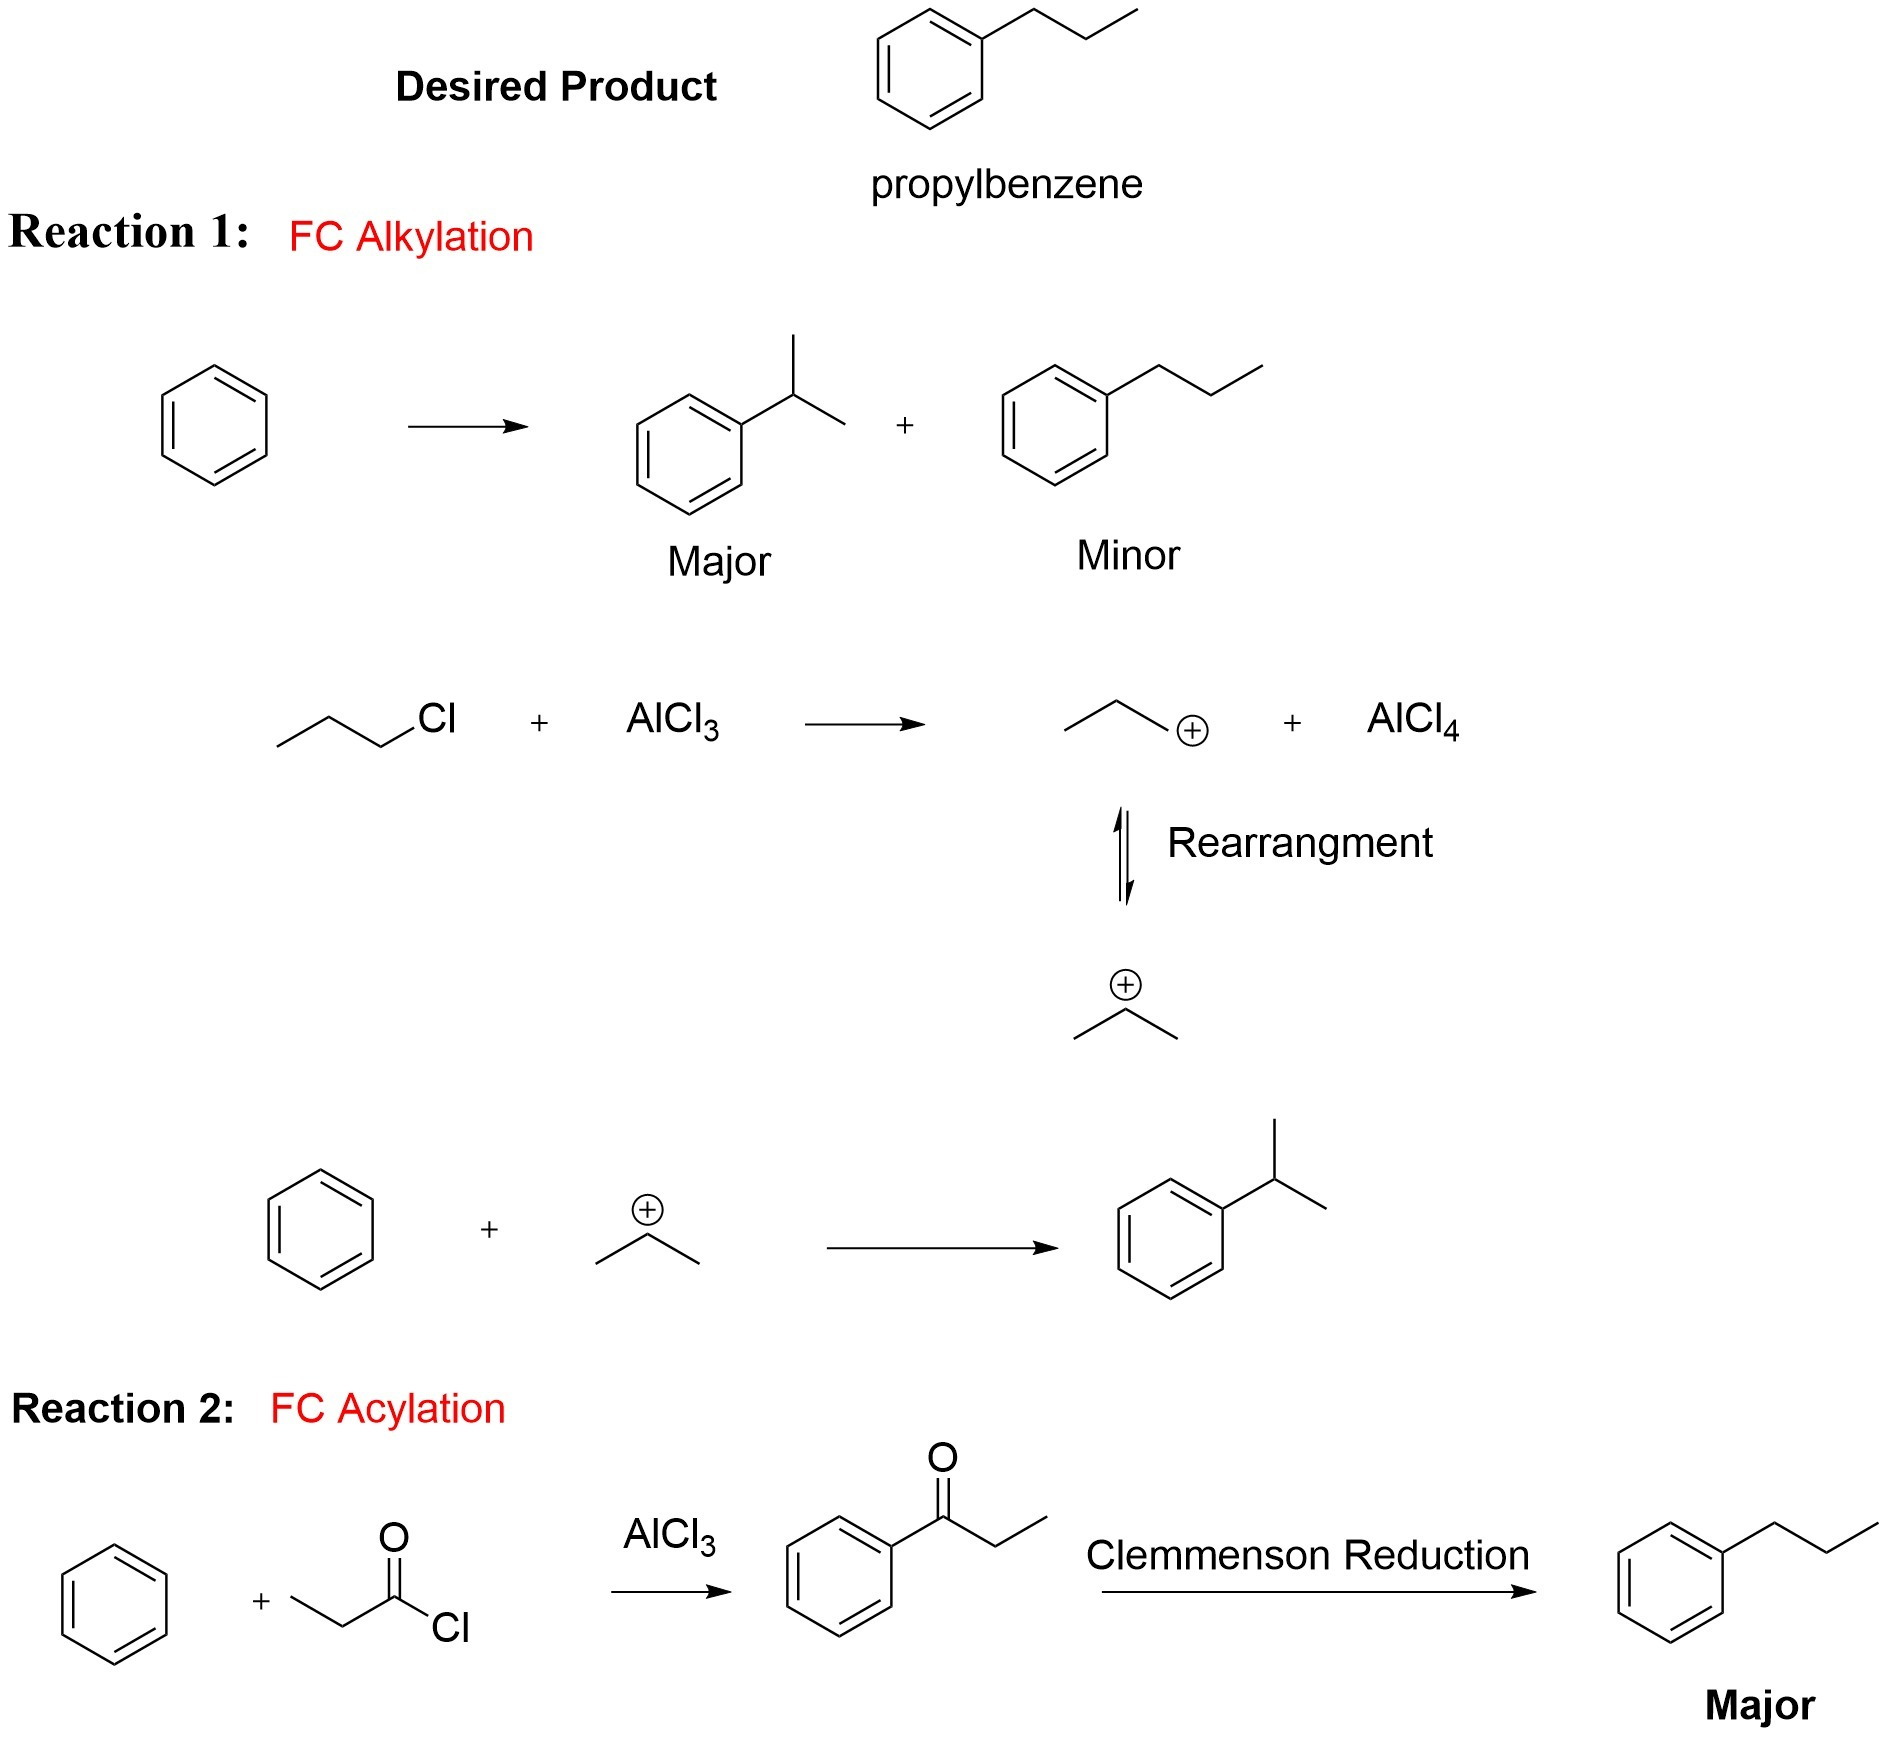 Identify the compounds below that cannot be made via a direct